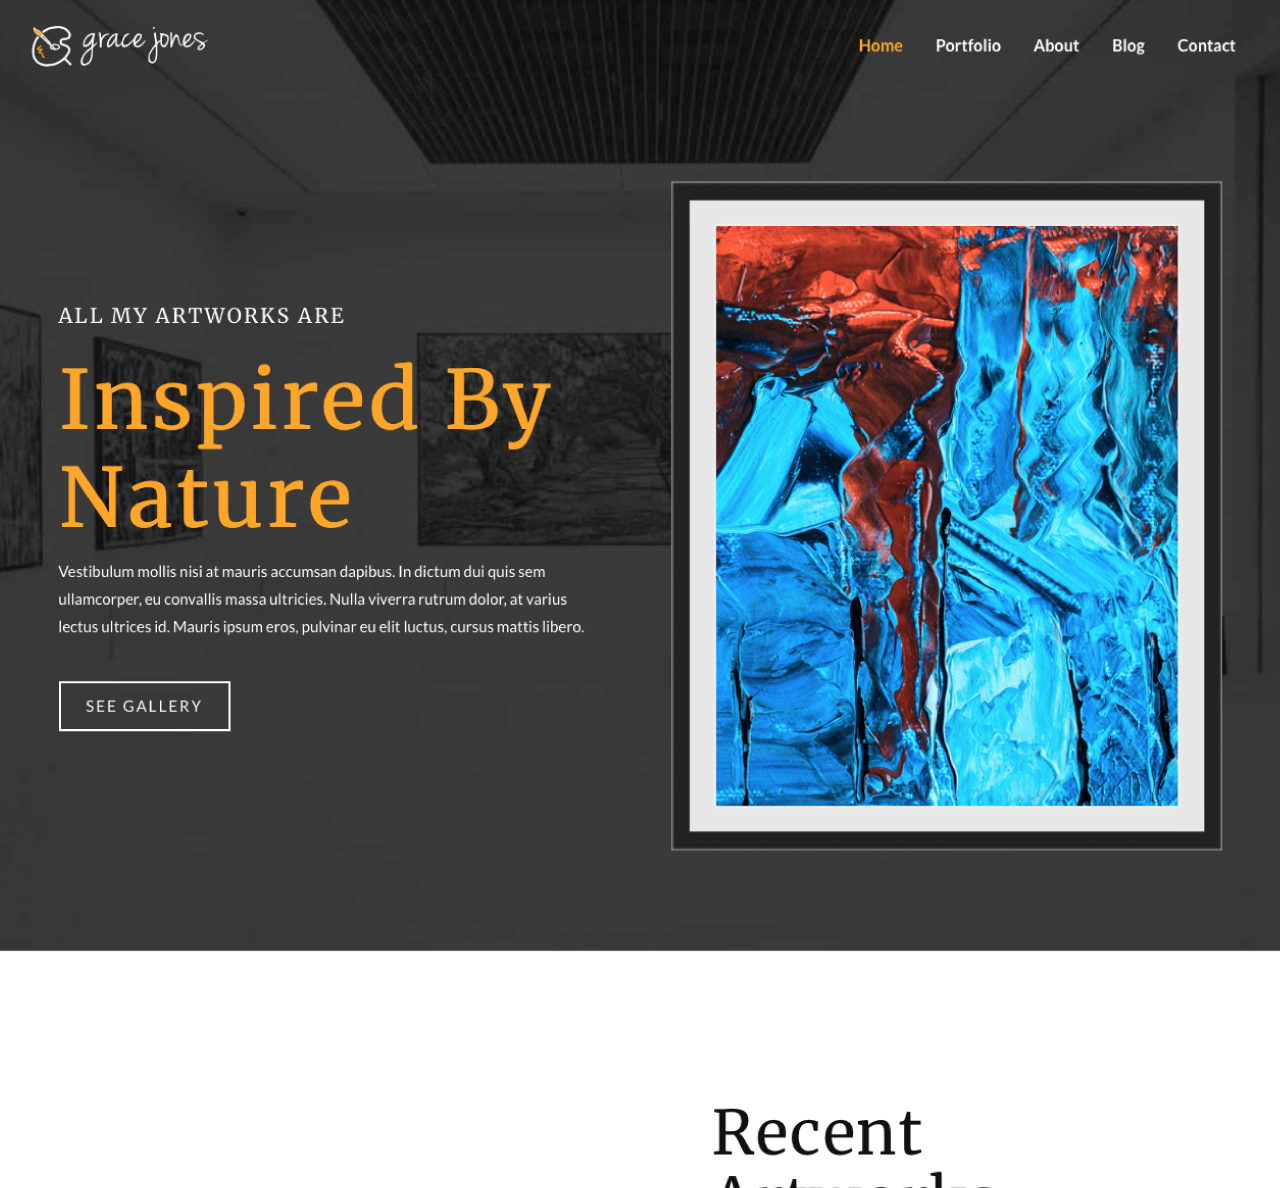 An Image of a Inspired by Nature new website design